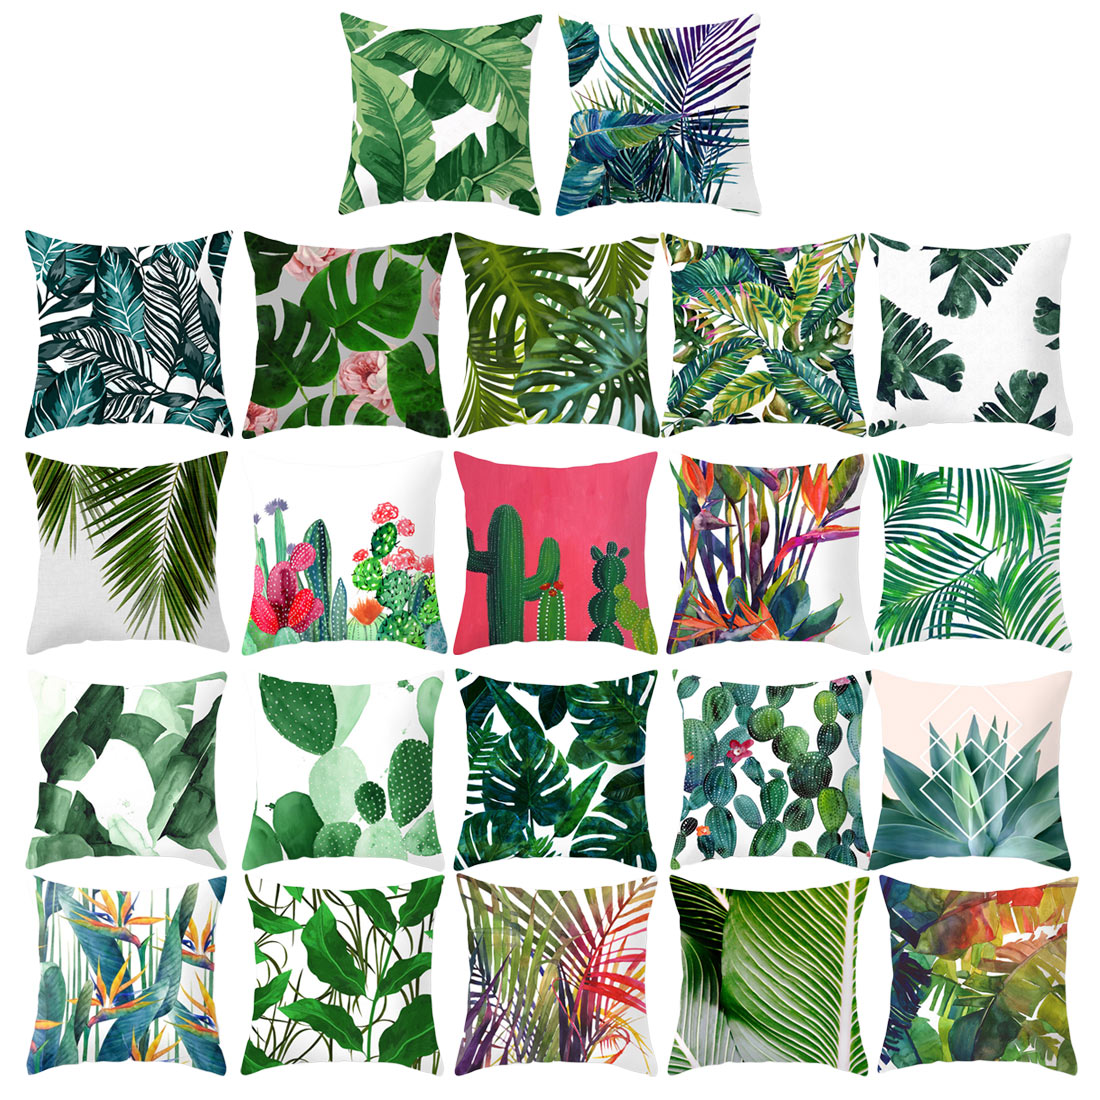 45x45cm Pillow Cover Cushion Cover Tropical Flower Pillow Case Soft Cotton polyester Green Plant Sofa Home Car(China)